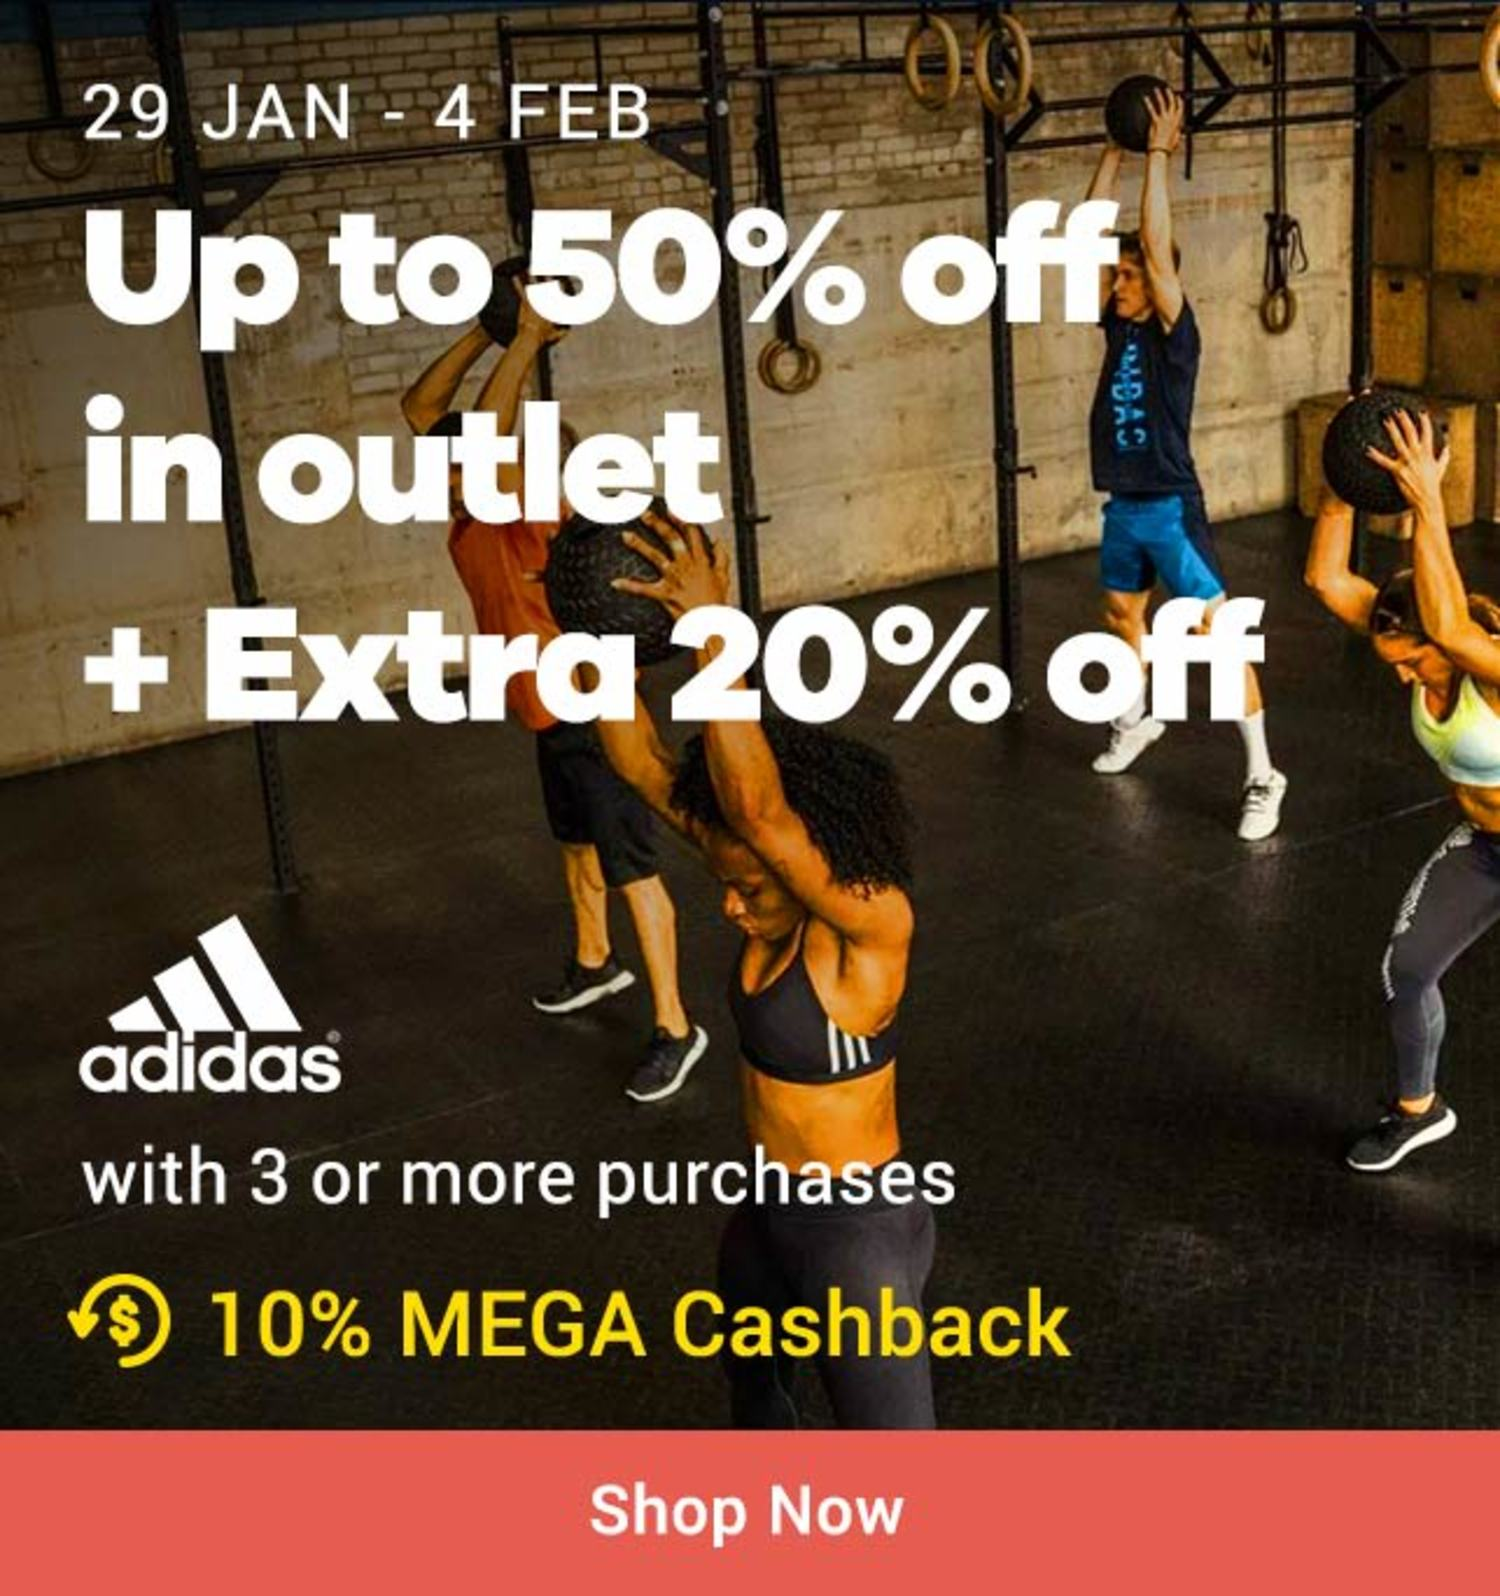 Adidas: Up to 50% in outlet + Extra 20% off